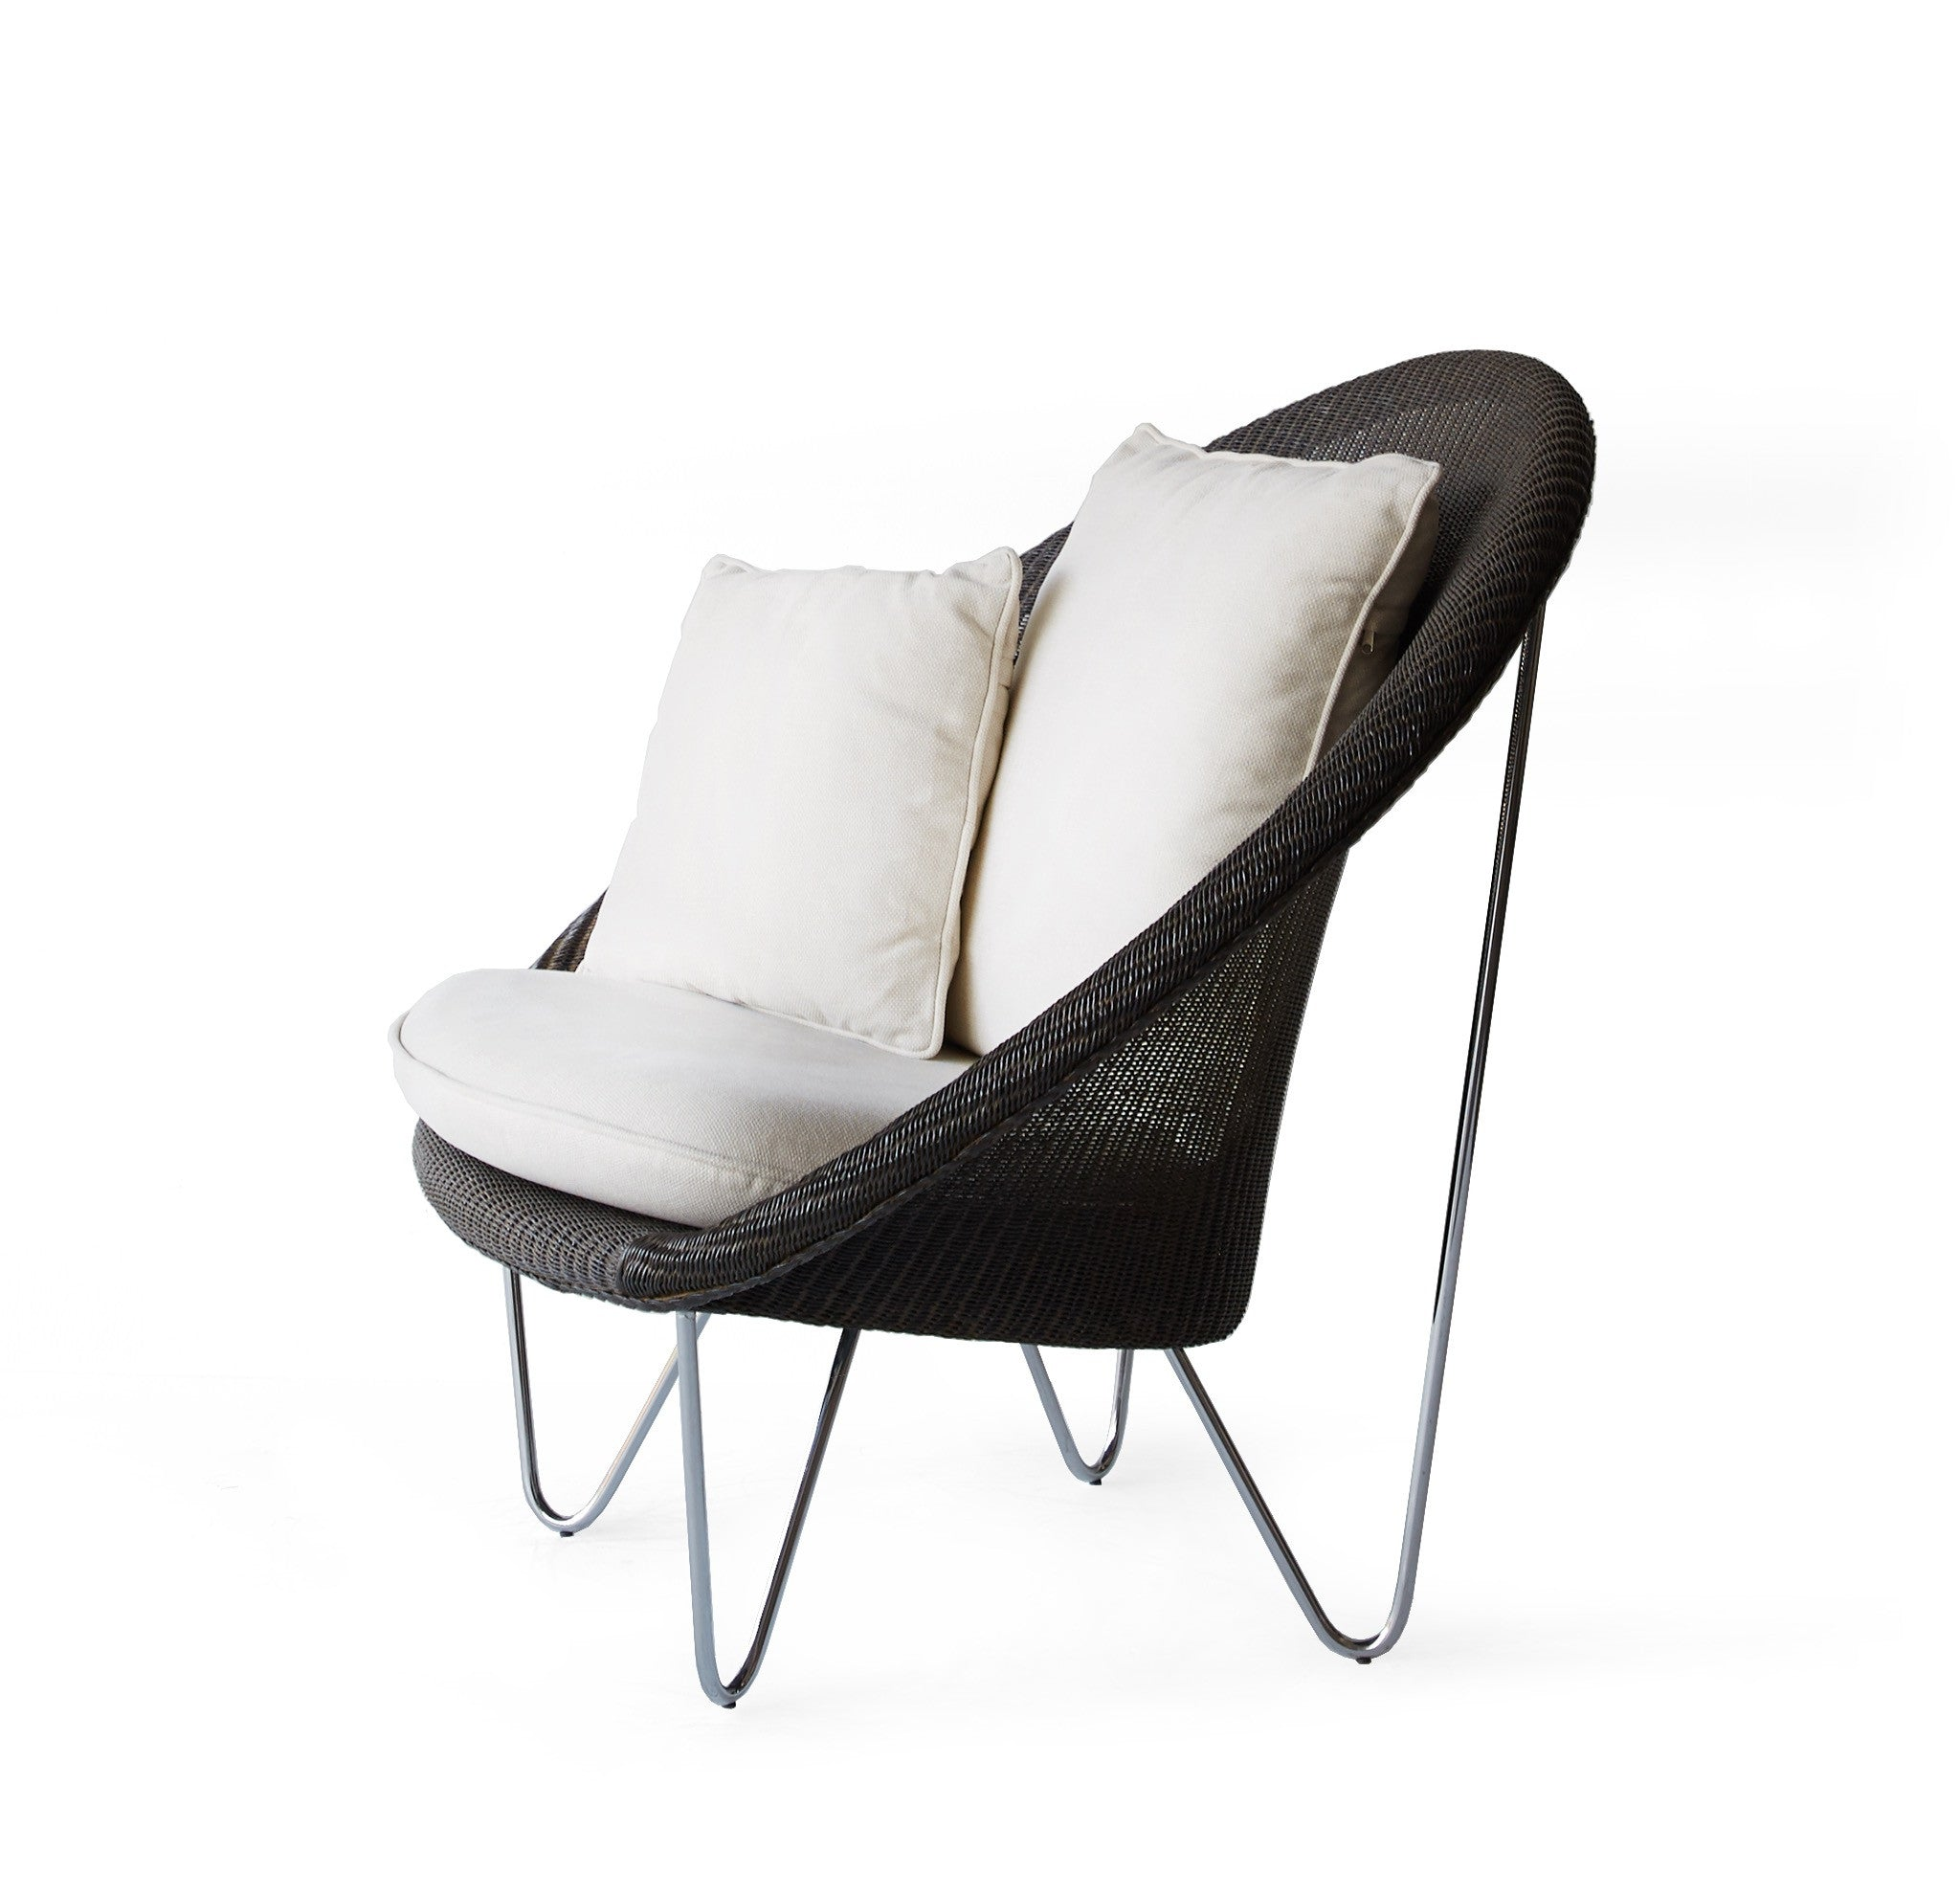 Joe Cocoon | Dark Grey Wash MW-Vincent Sheppard-Originals Furniture - 2